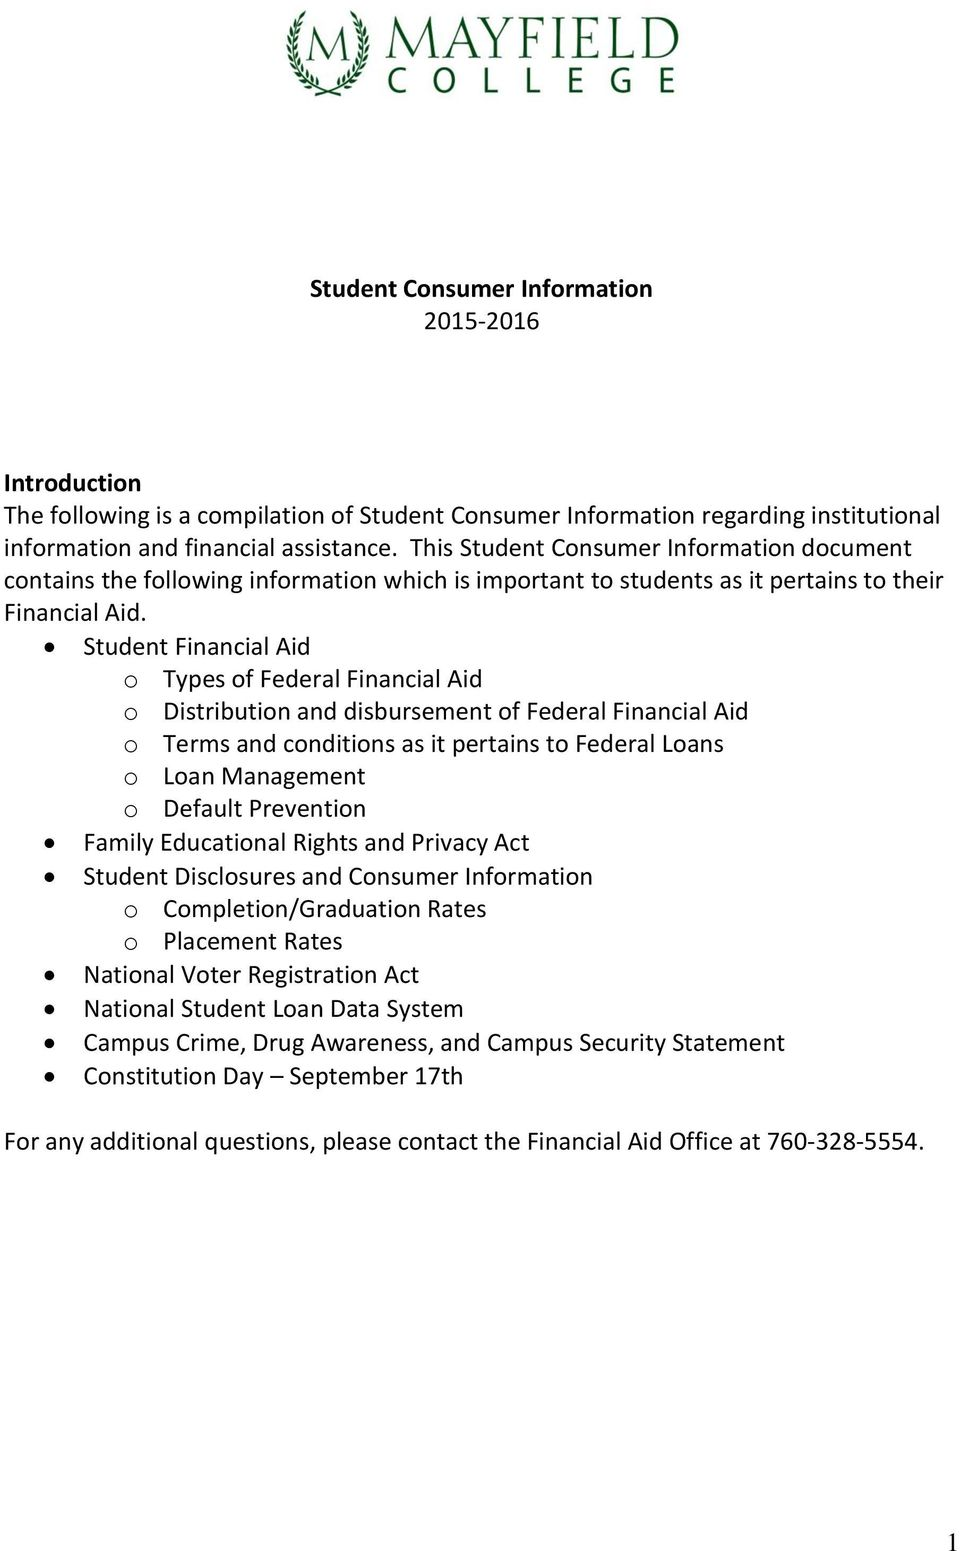 Student Financial Aid o Types of Federal Financial Aid o Distribution and disbursement of Federal Financial Aid o Terms and conditions as it pertains to Federal Loans o Loan Management o Default